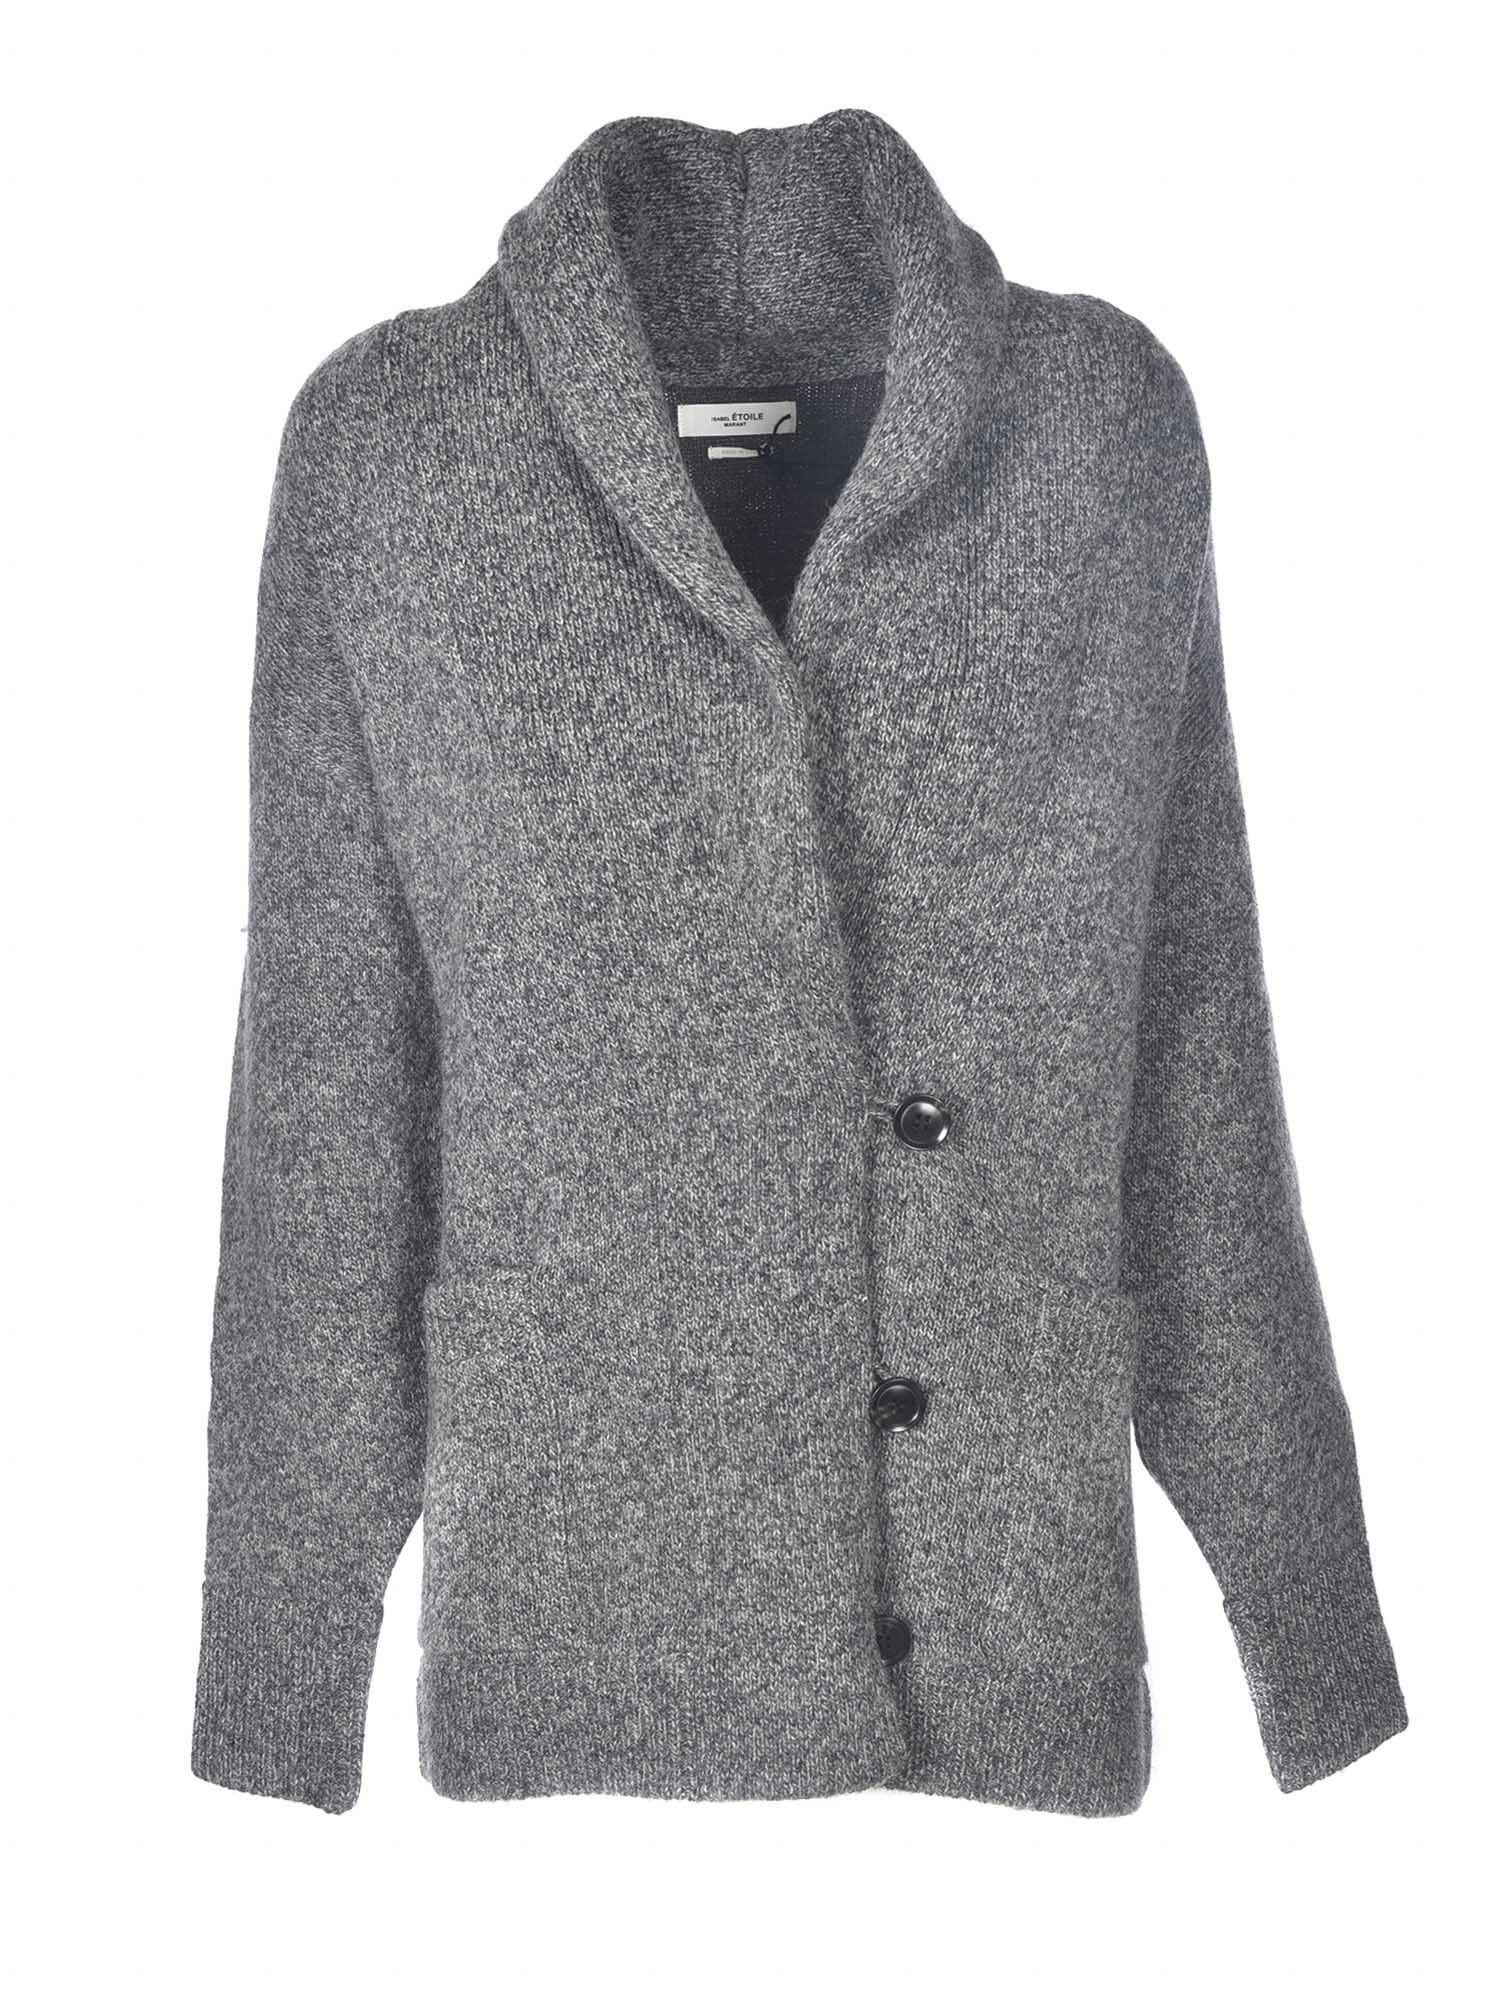 Isabel Marant Étoile MALHONR CARDIGAN IN GREY